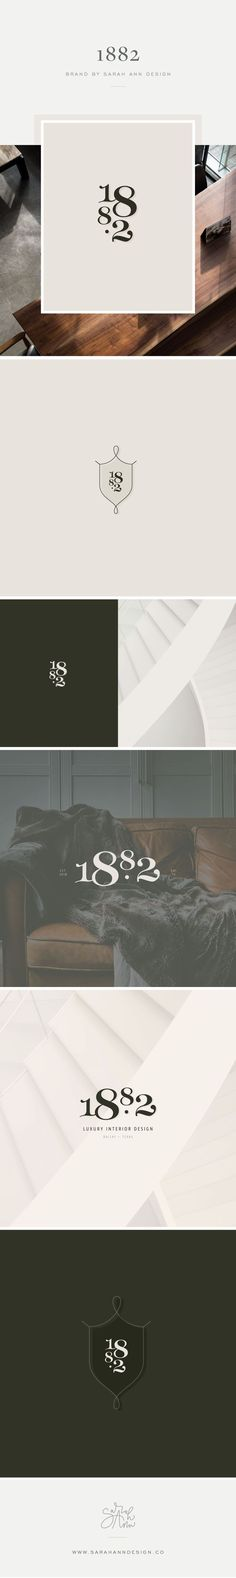 Branding for a luxury interior design concierge—bold, distinctive, and modern. with just a hint of femininity. Corporate Design, Brand Identity Design, Brand Design, Design Design, Home Design, Design Model, Graphic Design, Design Minimalista, Luxury Interior Design